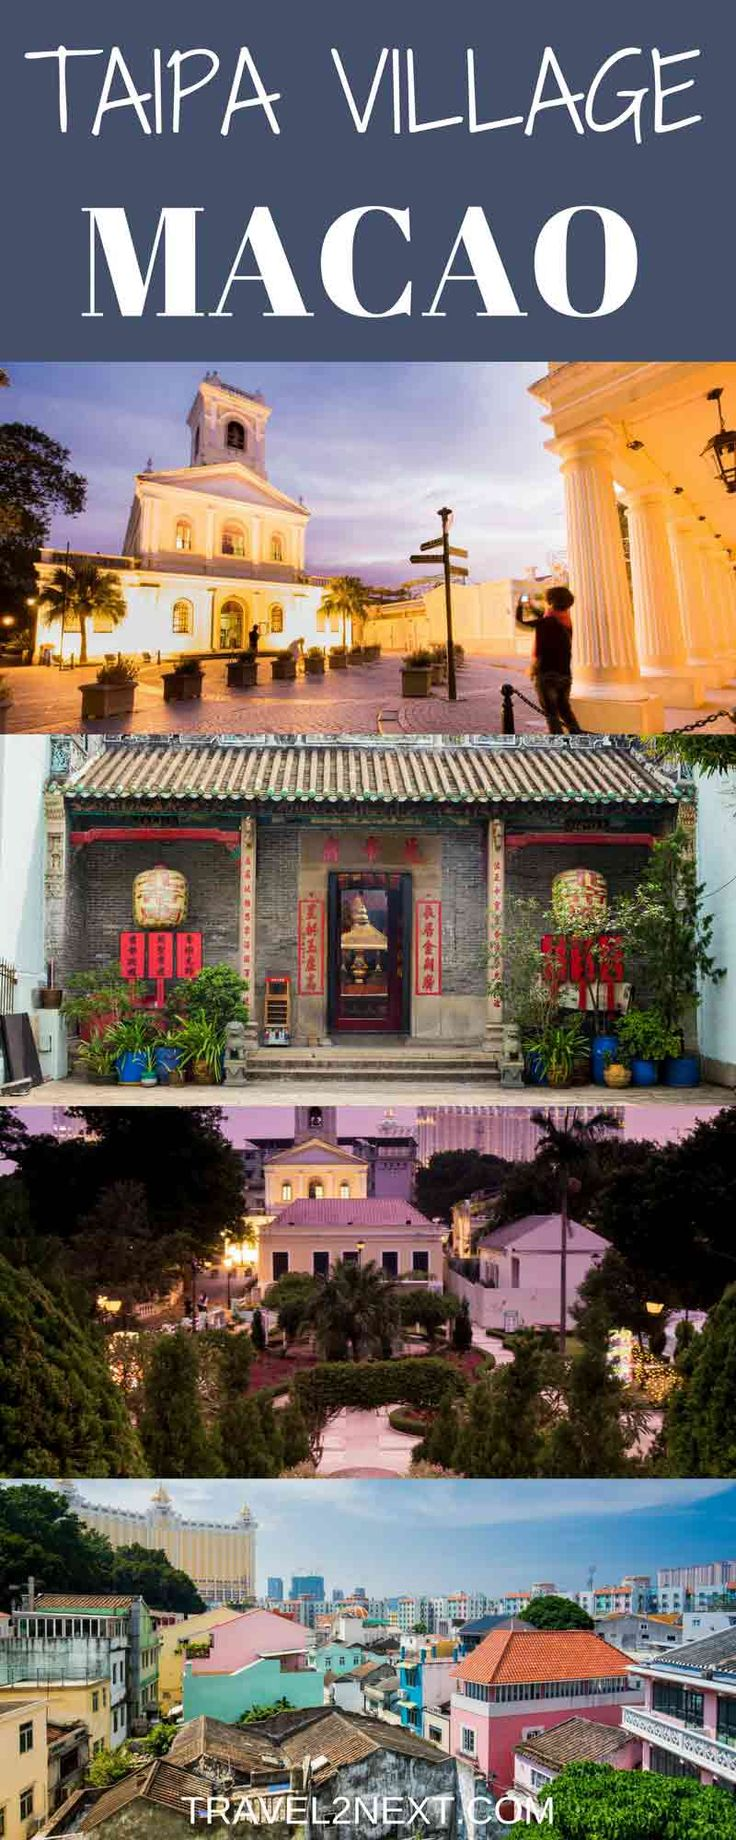 Taipa Village Macao. Like many languages around the world, Portuguese has a proverb advising against putting new wine in old bottles – yet that's exactly what's happening in Taipa, the historic fishing village that's reinventing itself for the 21st century.